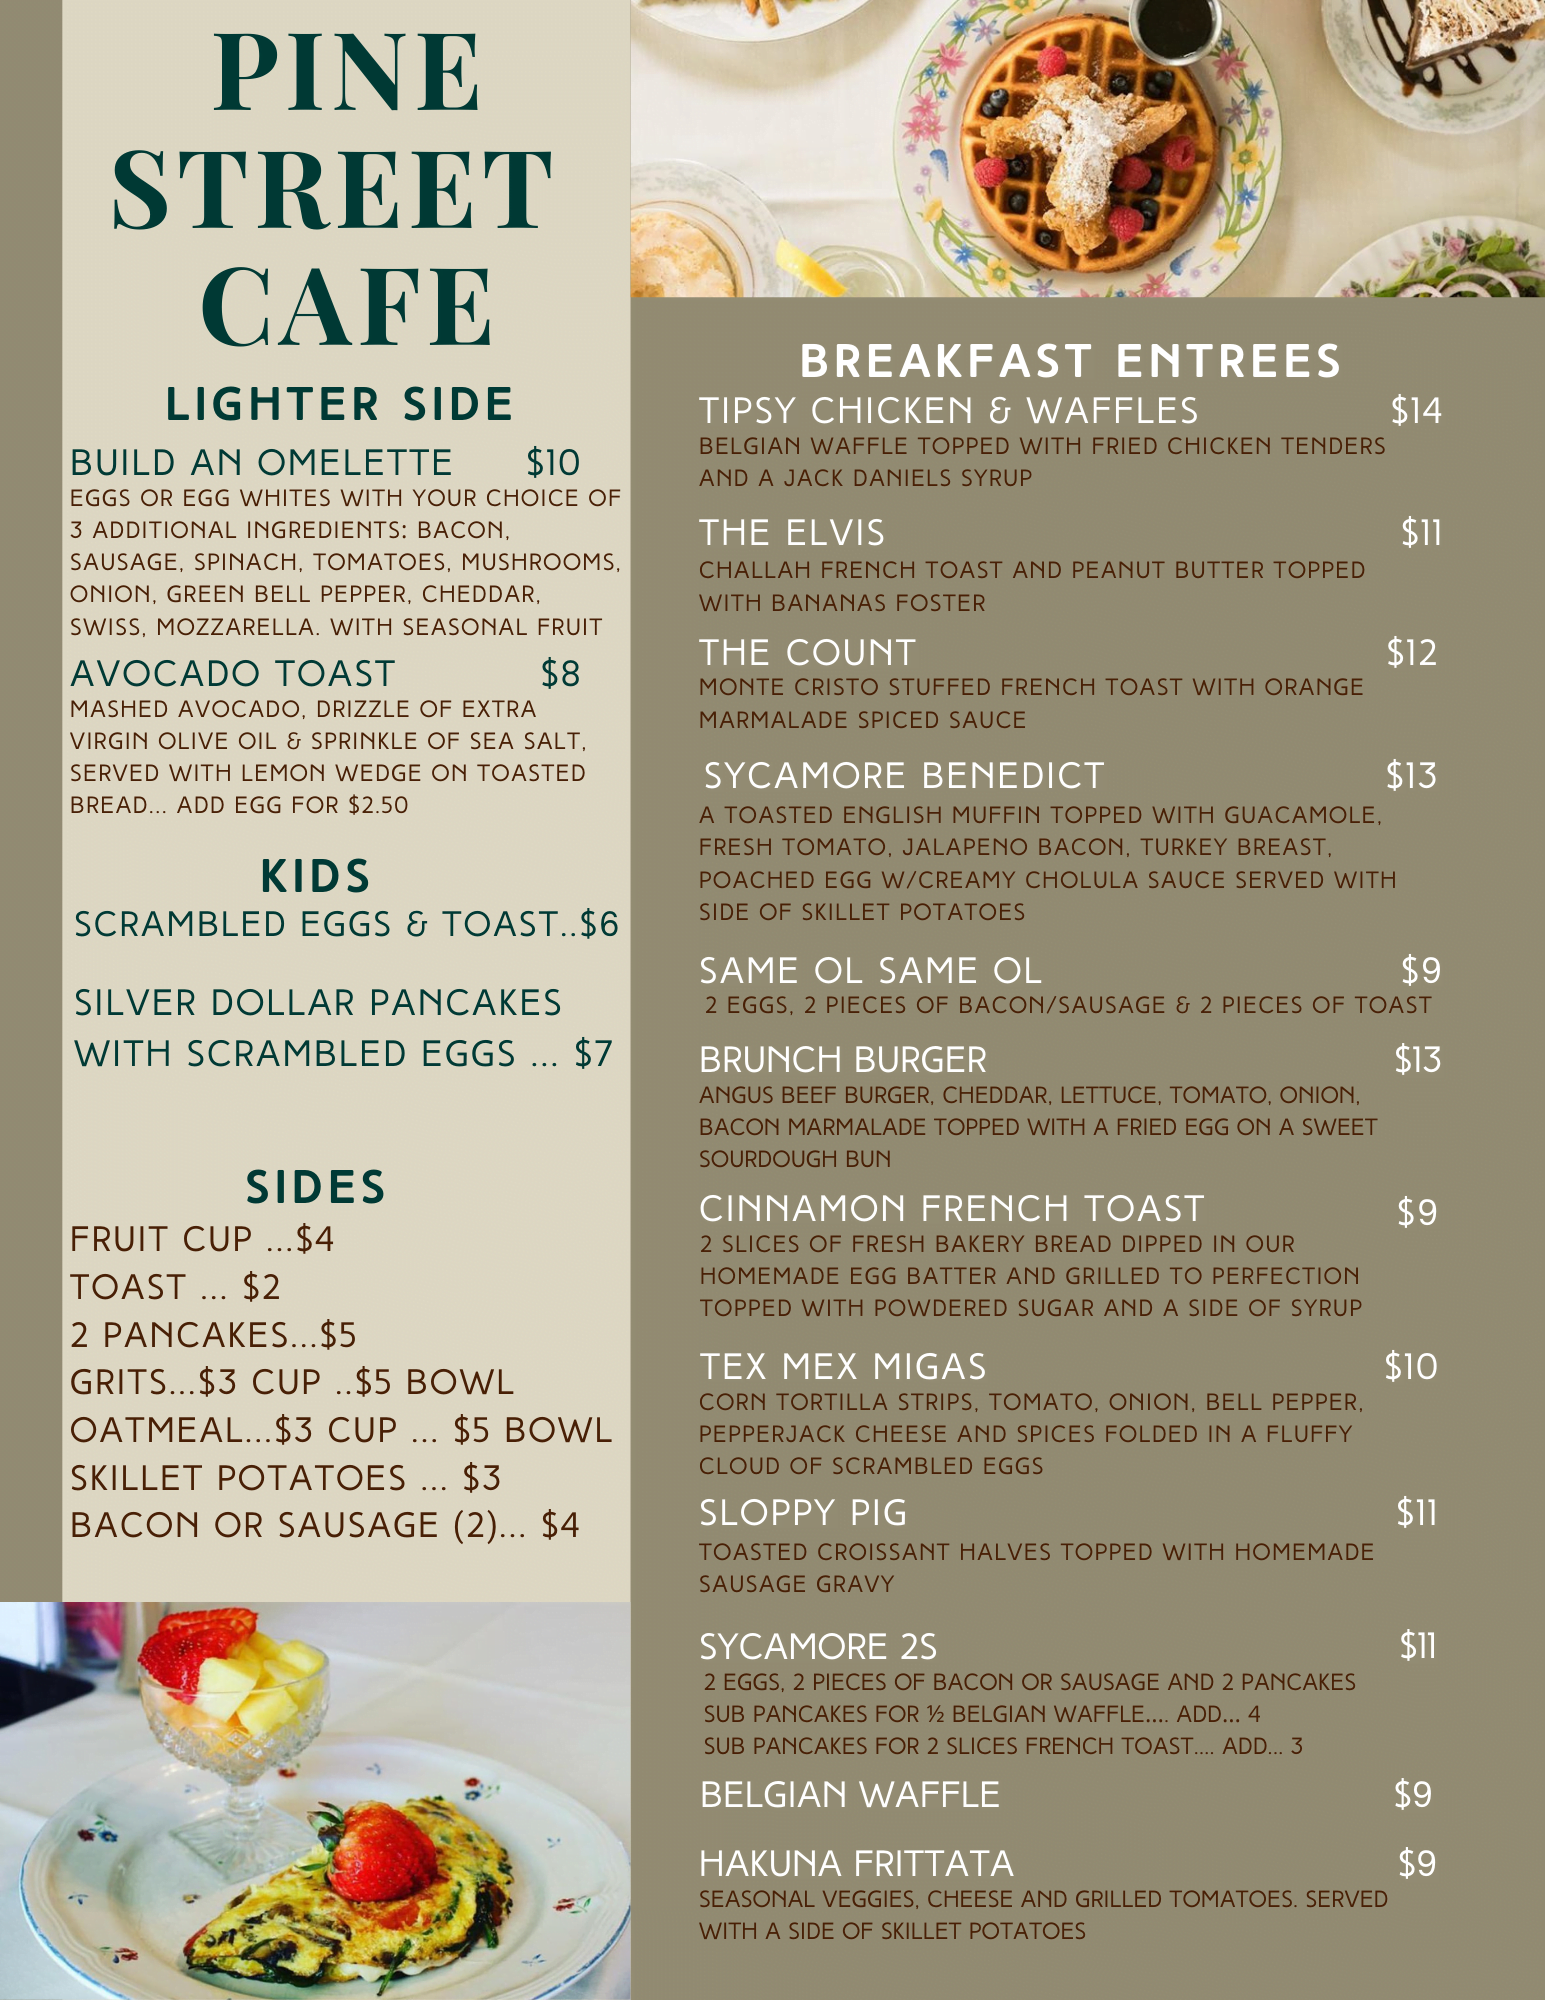 pine street cafe breakfast menu